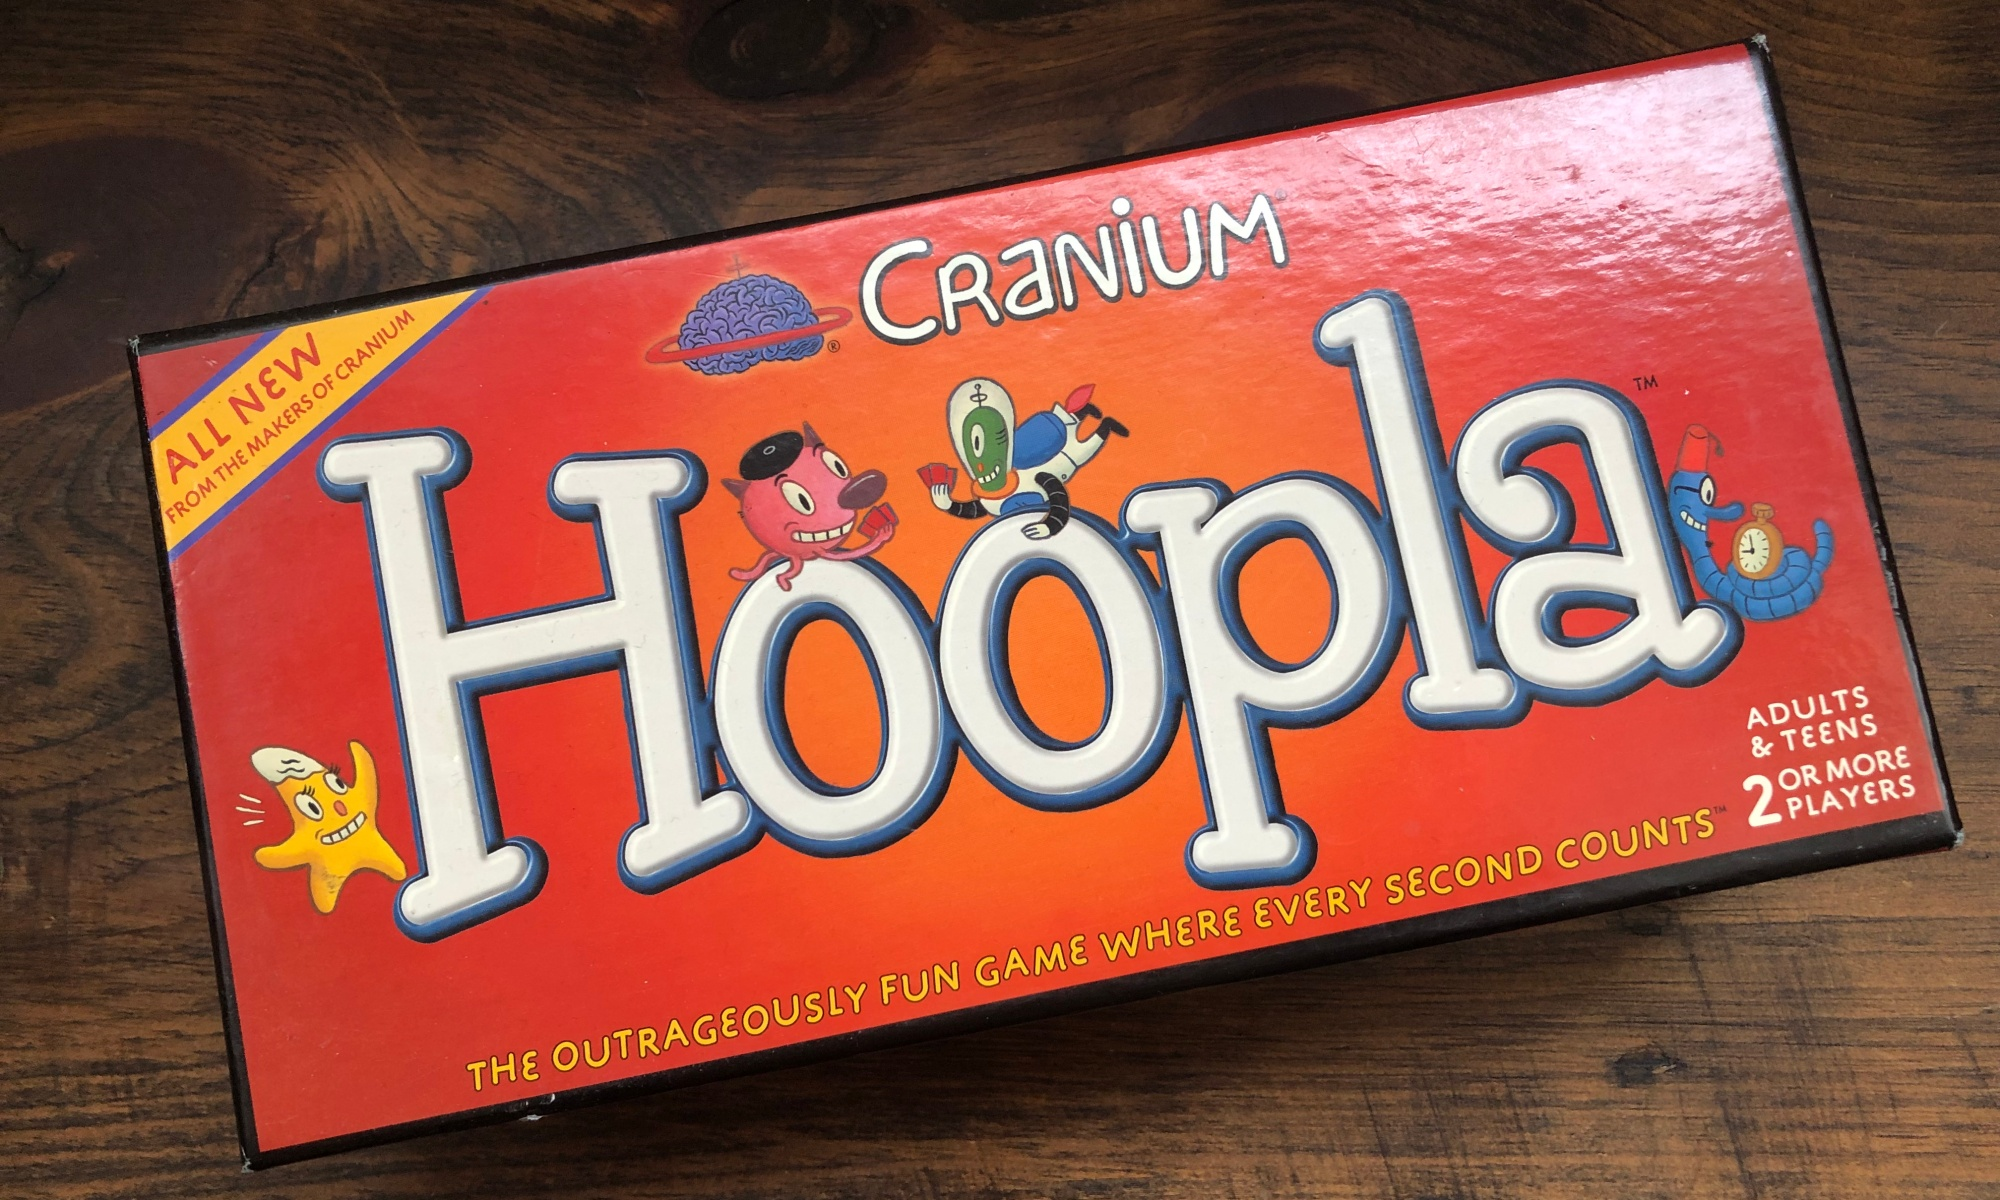 Box for Cranium's Hoopla board game